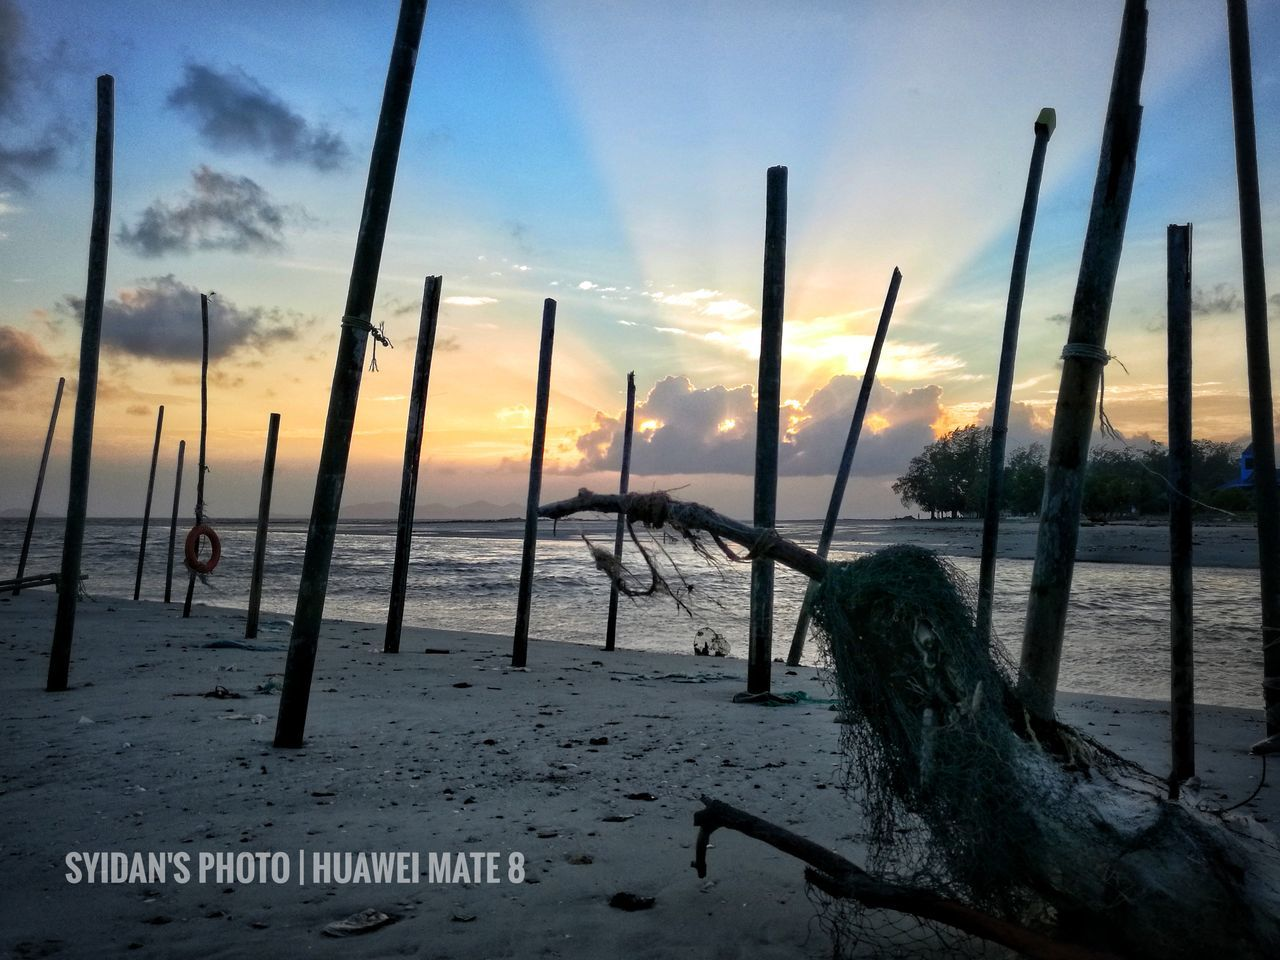 Sunrising Landscape Mediajohor The Great Outdoors - 2017 EyeEm Awards Huawei Mate 8 Snapseed Mersing Beauty In Nature Horizon Over Water Johor, Malaysia